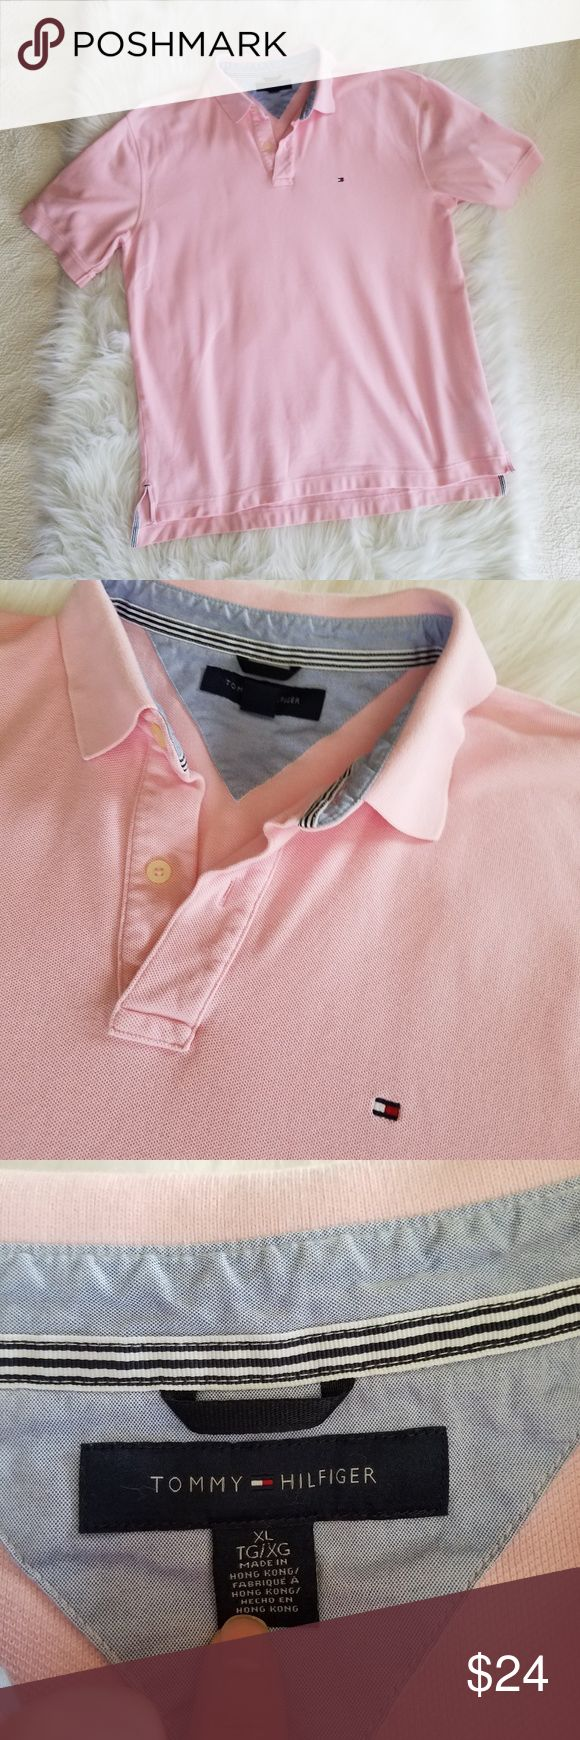 Tommy Hilfiger Pink Polo Shirt Crisp pink polo shirt by Tommy Hilfiger Excellent Used Condition Measurements in Photos Tommy Hilfiger Shirts Polos